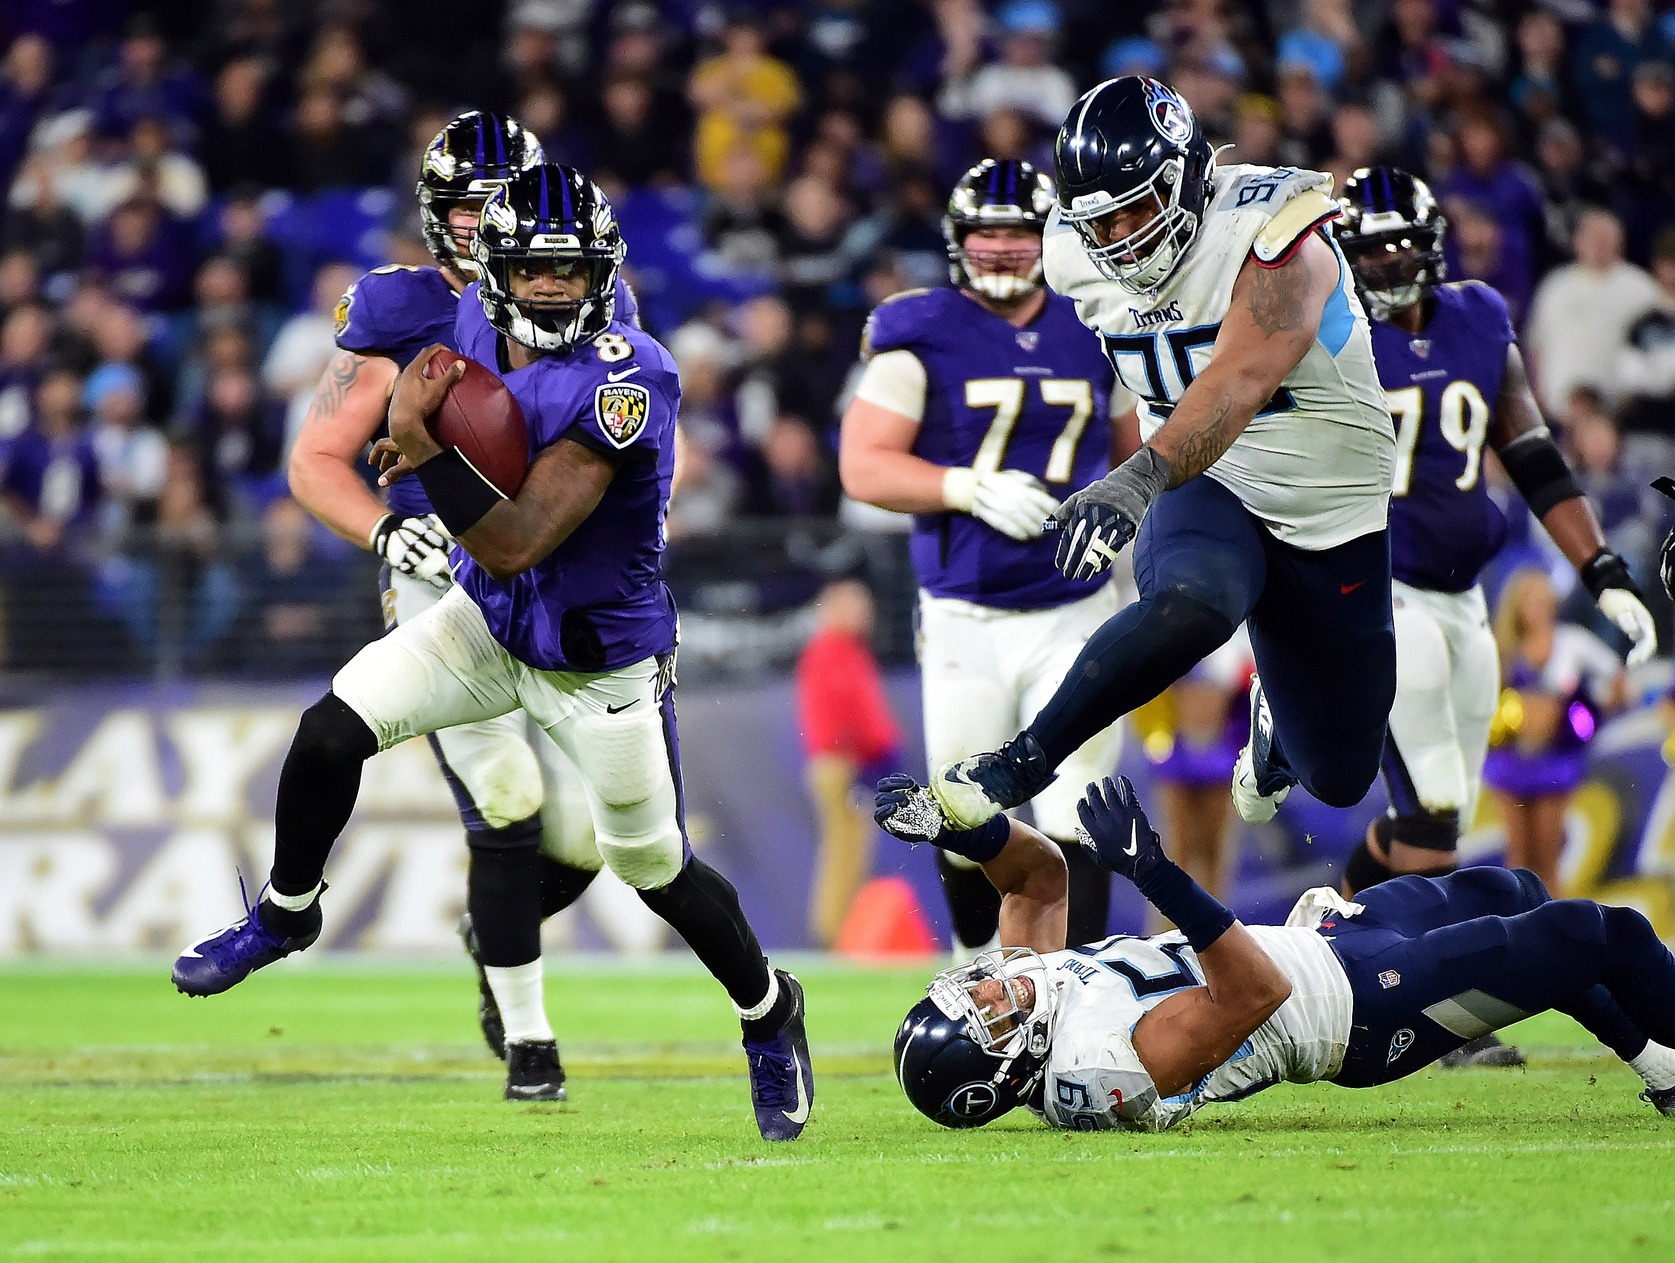 Jan 11, 2020; Baltimore, Maryland, USA; Baltimore Ravens quarterback Lamar Jackson (8) runs with the ball in the third quarter against the Tennessee Titans in a AFC Divisional Round playoff football game at M&T Bank Stadium. Mandatory Credit: Evan Habeeb-USA TODAY Sports